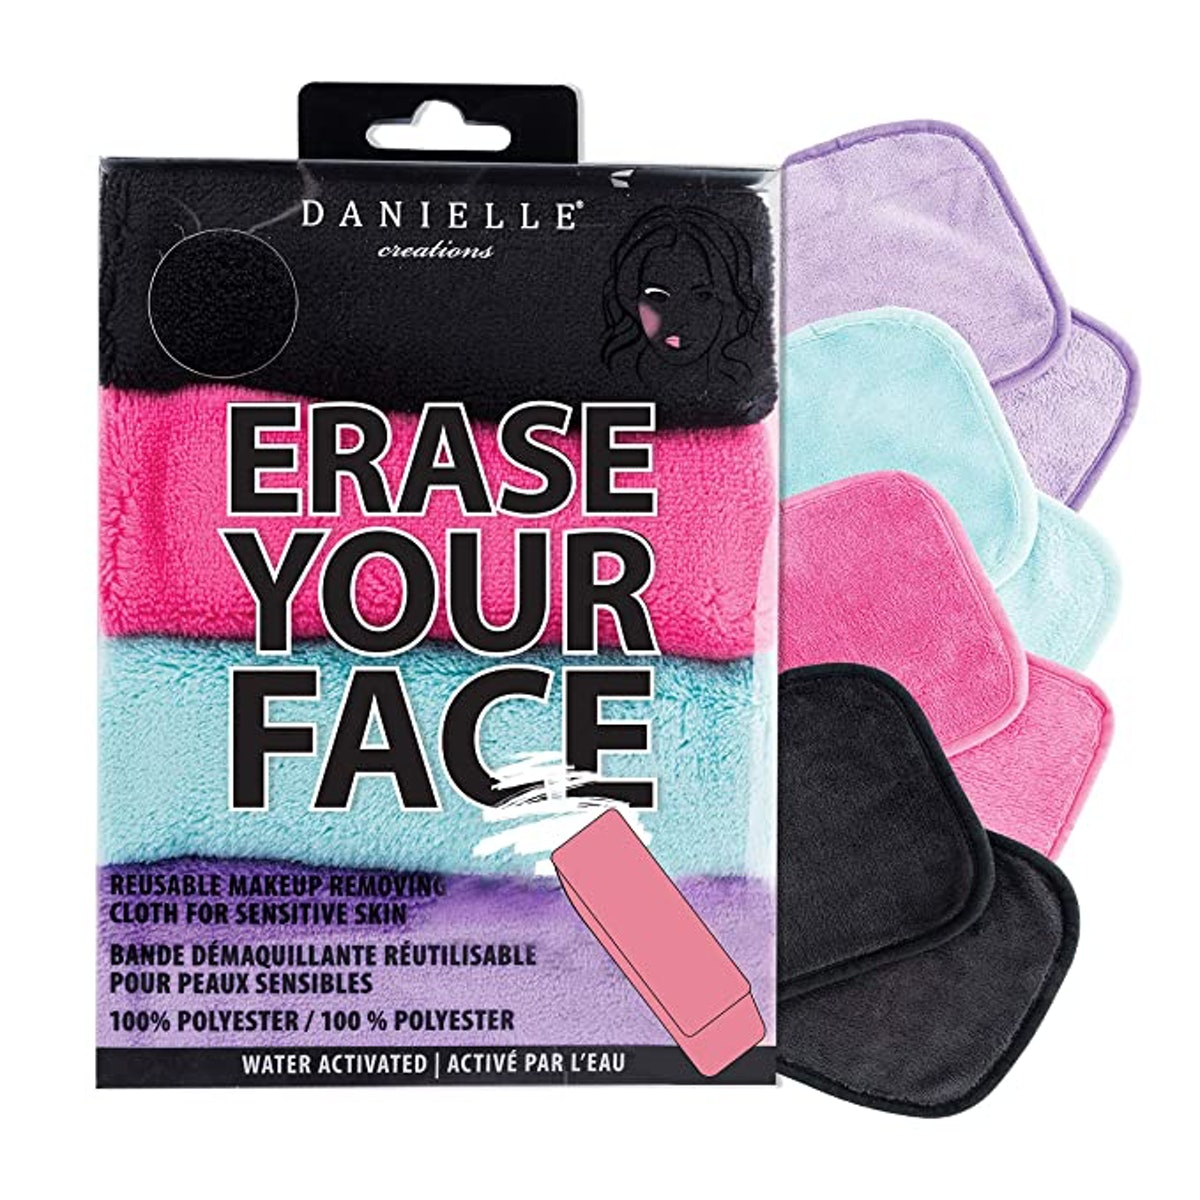 Erase Your Face Make-Up Removing Cloths (4-Pack)